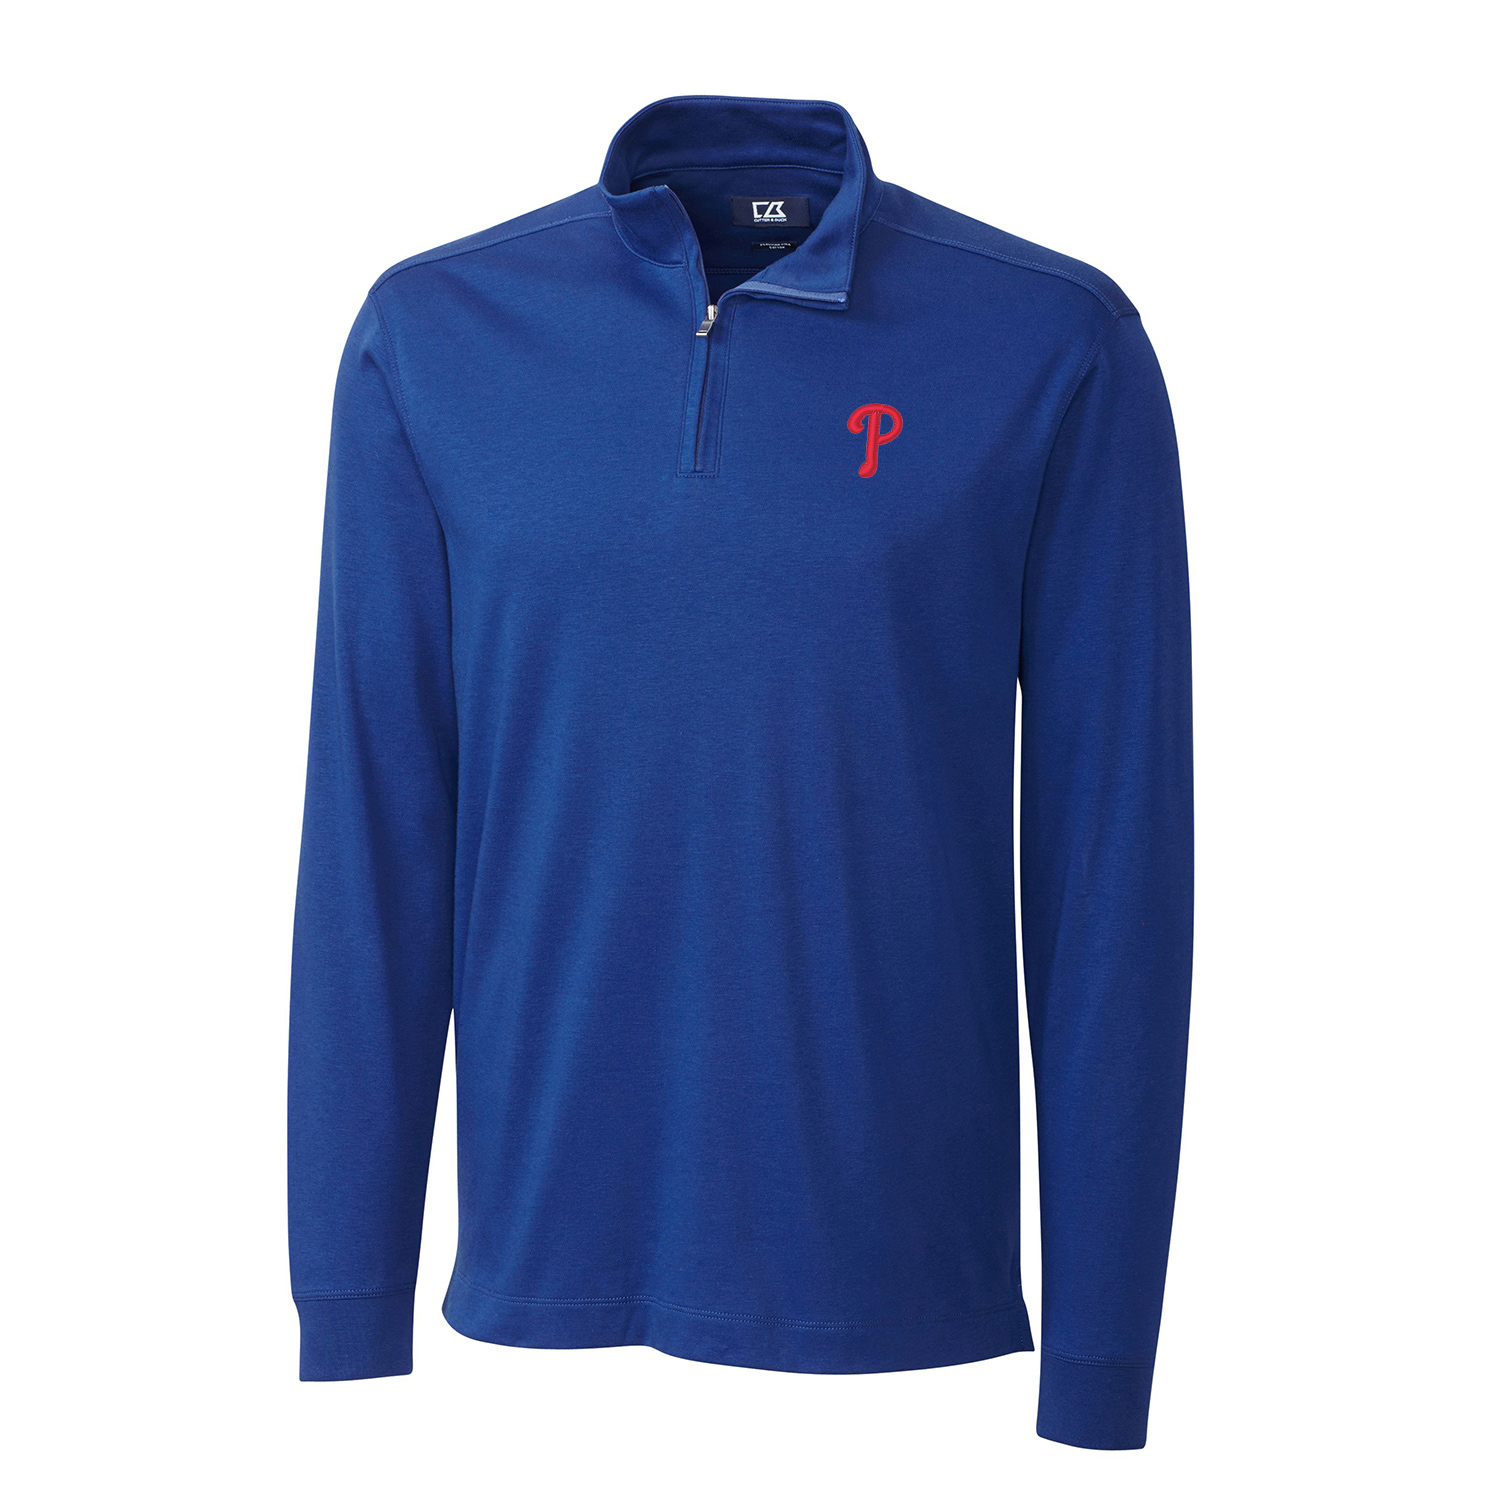 Men's Cutter & Buck Royal Philadelphia Phillies Belfair Half-Zip Pullover Jacket